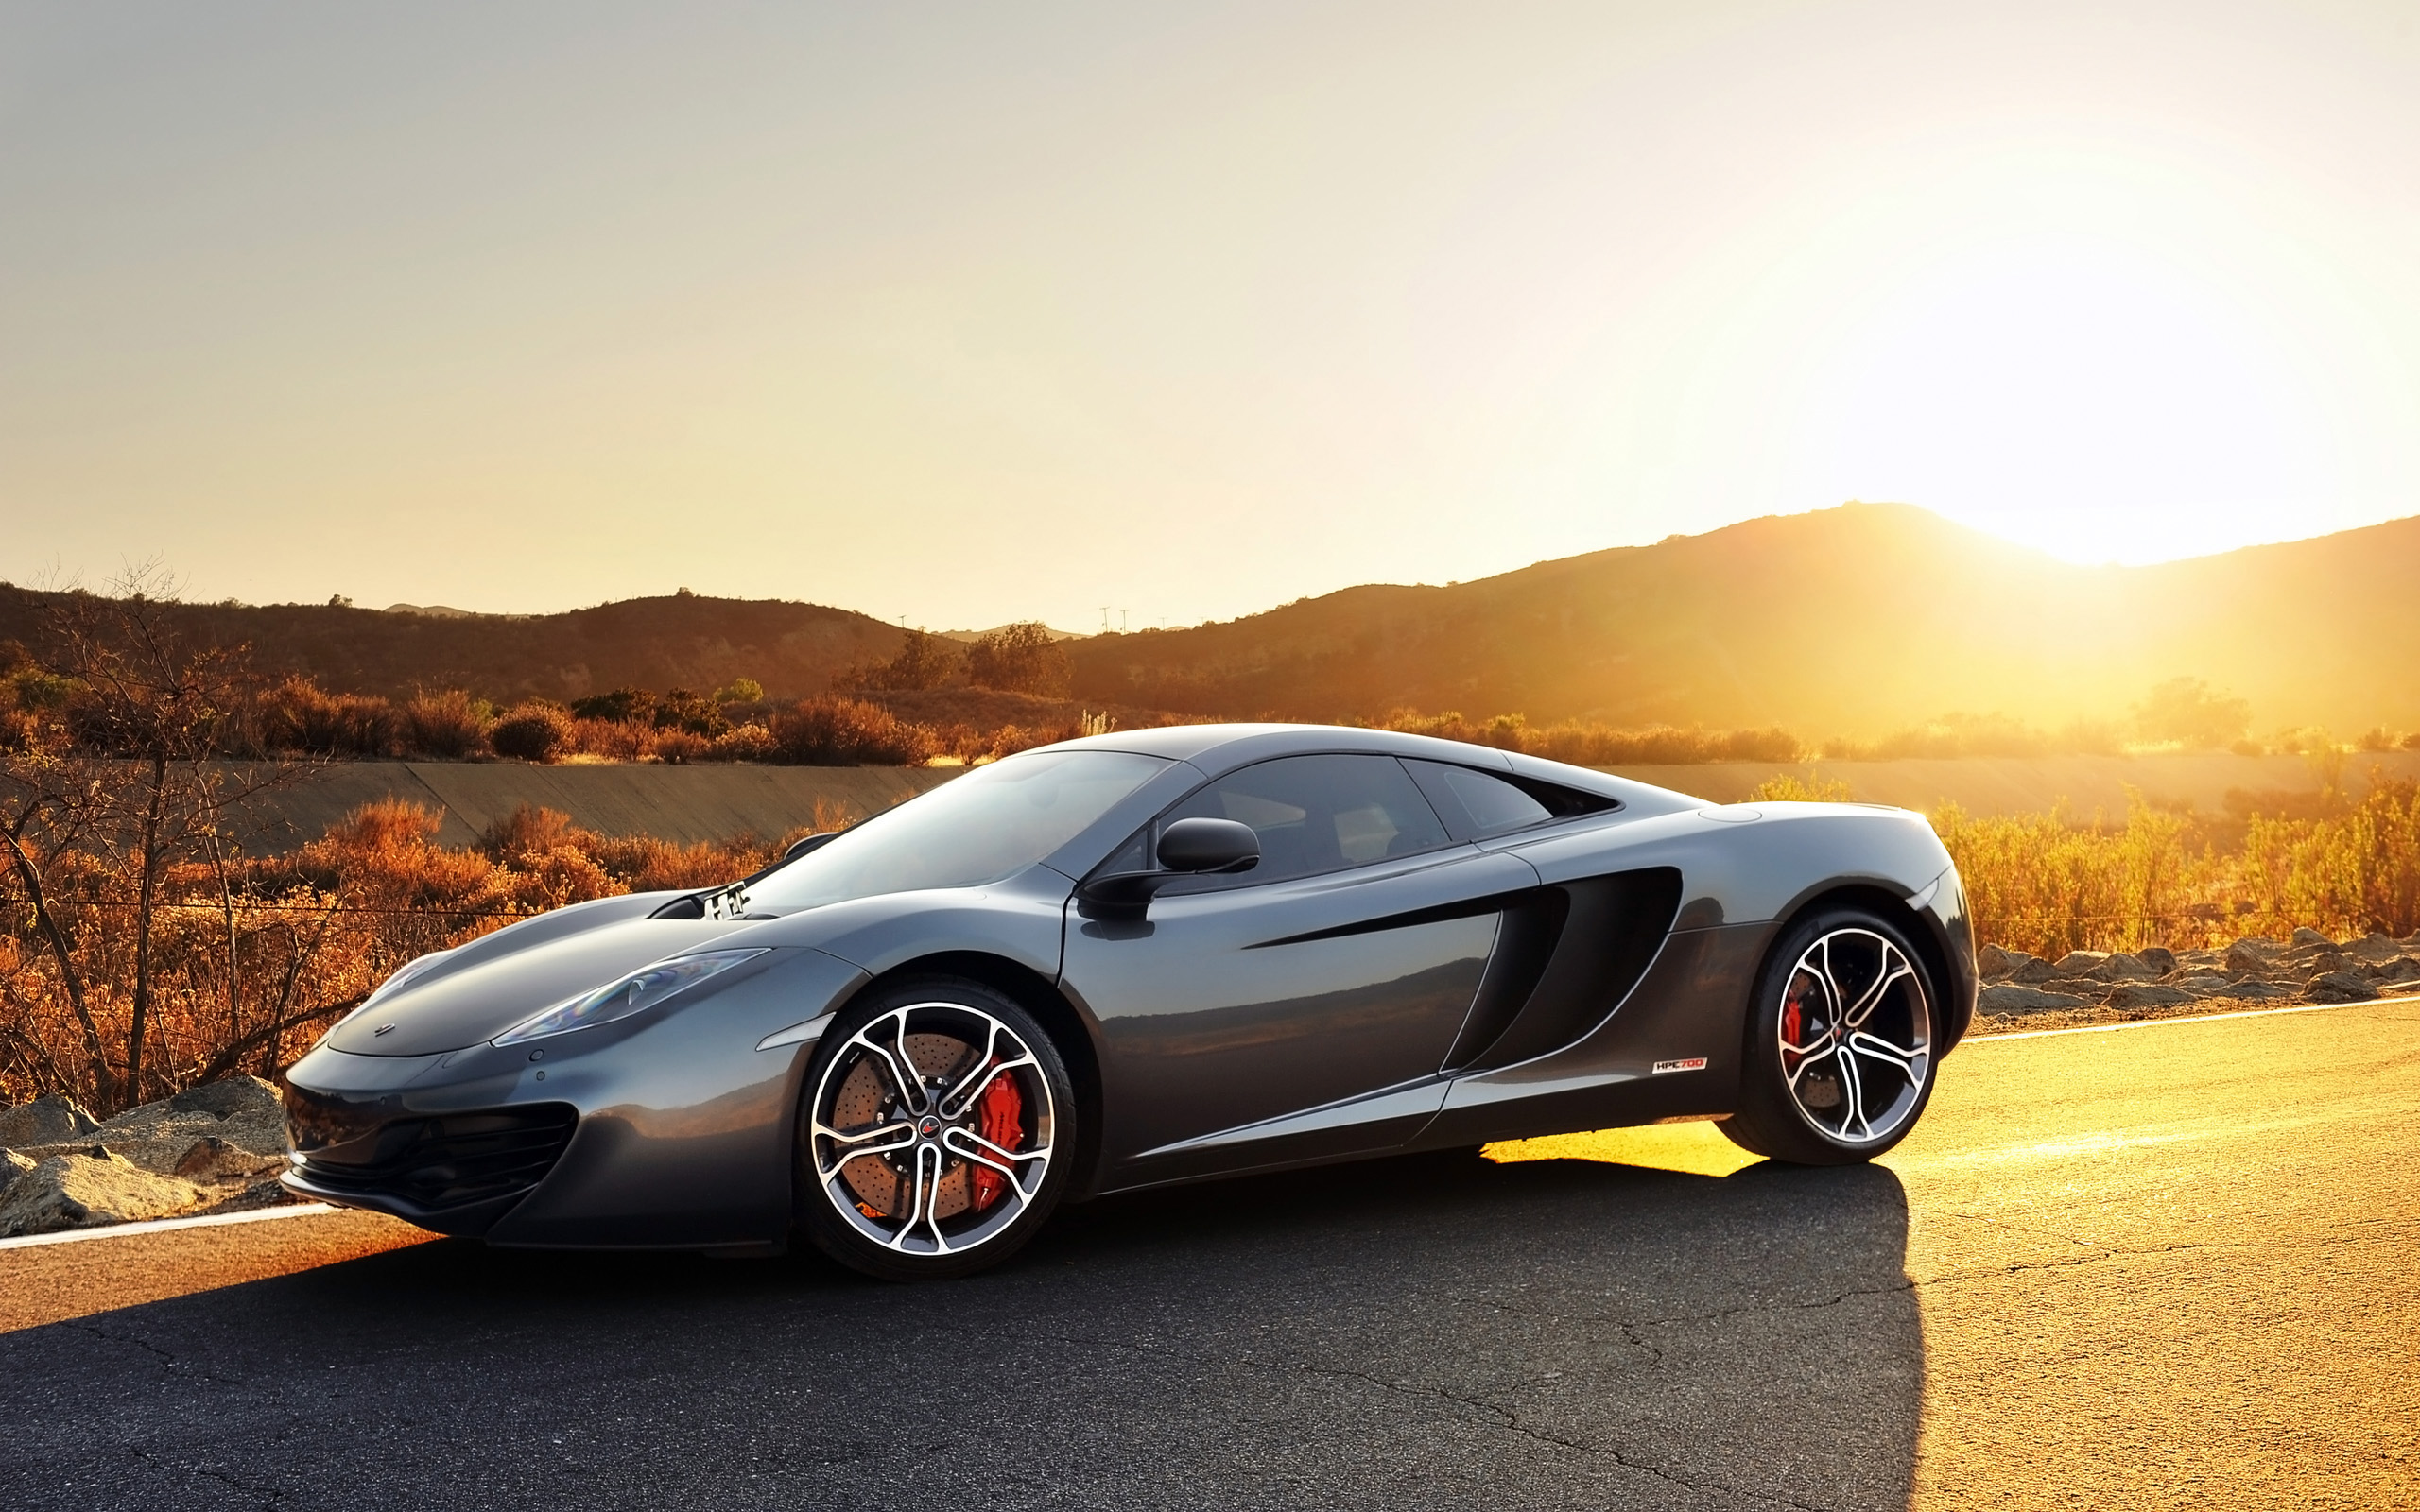 http://www.hdcarwallpapers.com/walls/2013_mclaren_mp4_12c_hpe700_by_hennessey-wide.jpg